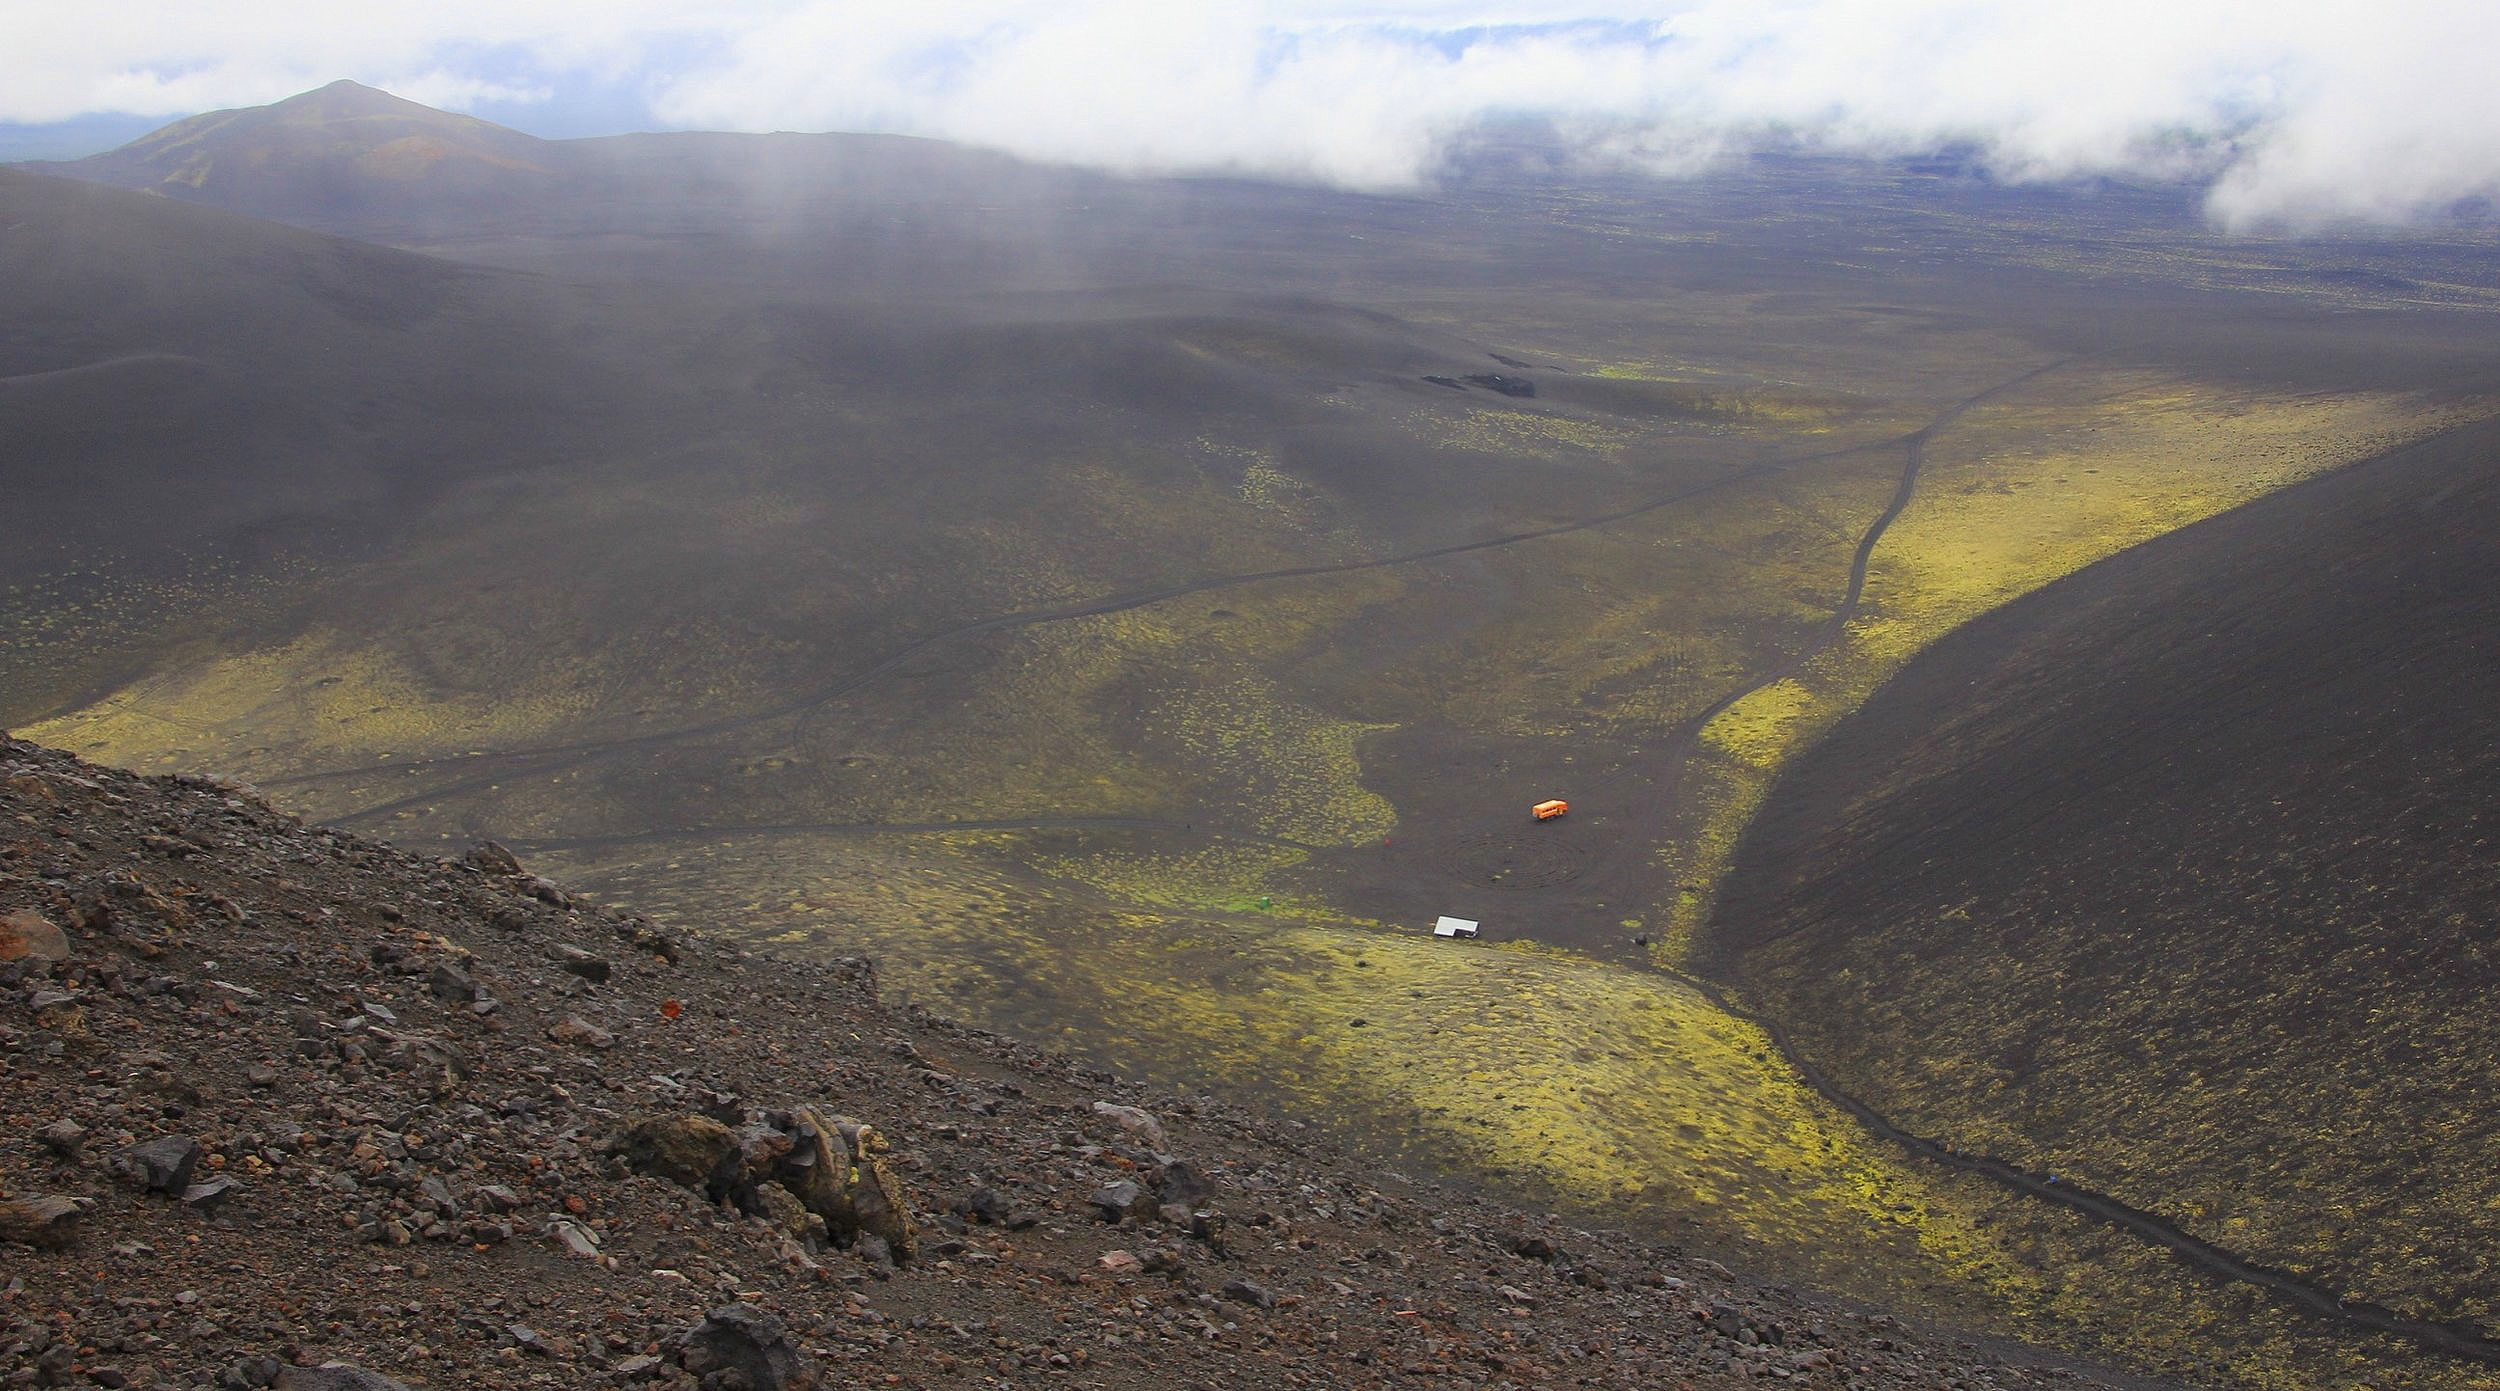 We were waiting for Sergei, our driver, and I hiked up to the top of a volcanic cone next to the shelter. From the top, the desolate landscape spreads out as far as the eye can see. I hiked to the top to warm up as we are getting really cold in the mist and rain.